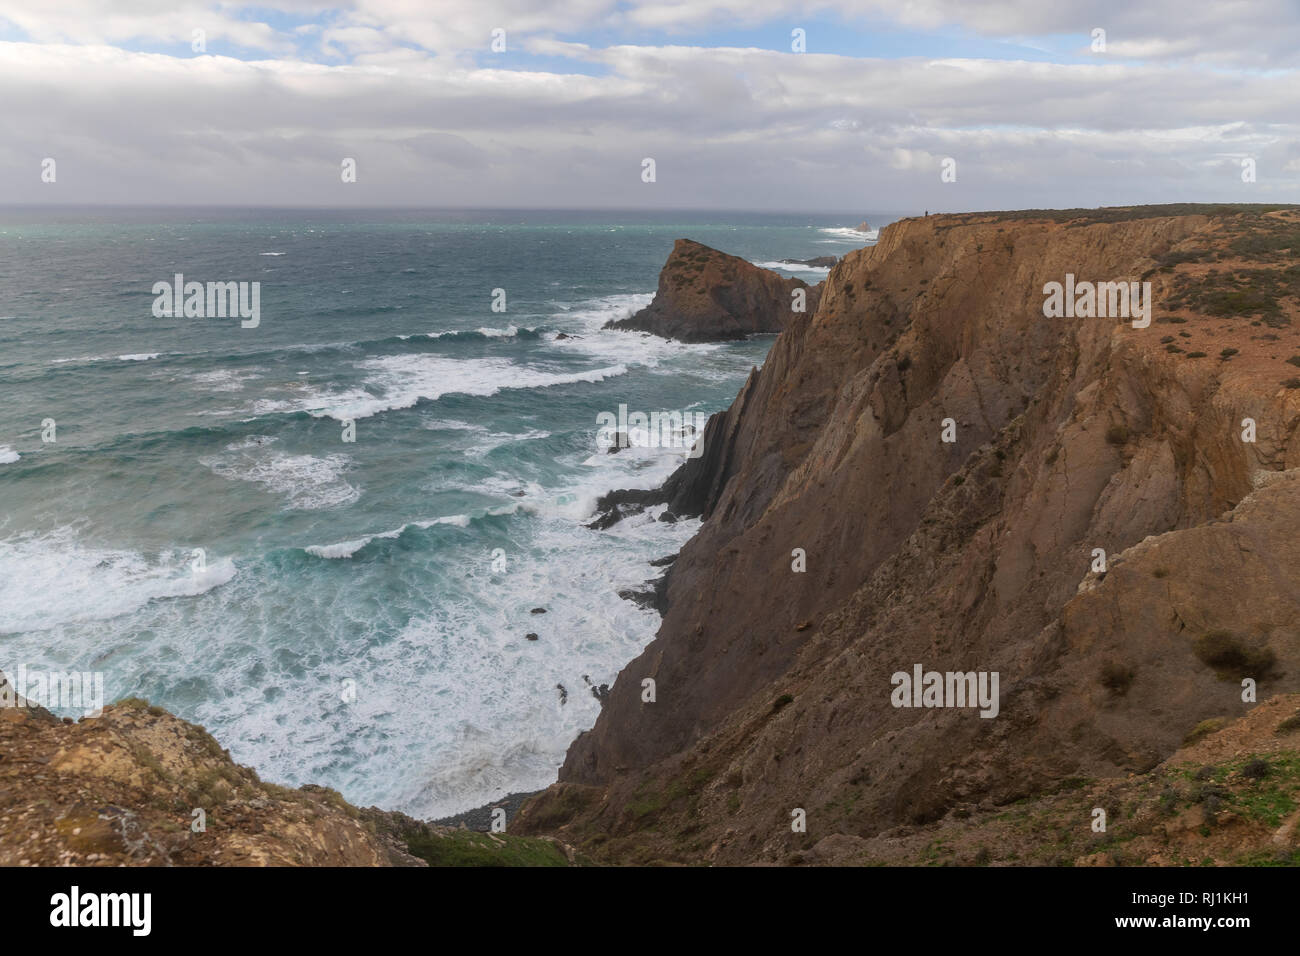 Famous place in south Portugal, Aljezur city, Arrifana beach, The rocky coast, waves of Atlantic Ocean, sharp rocks, azure water, yellow flowers, arch - Stock Image